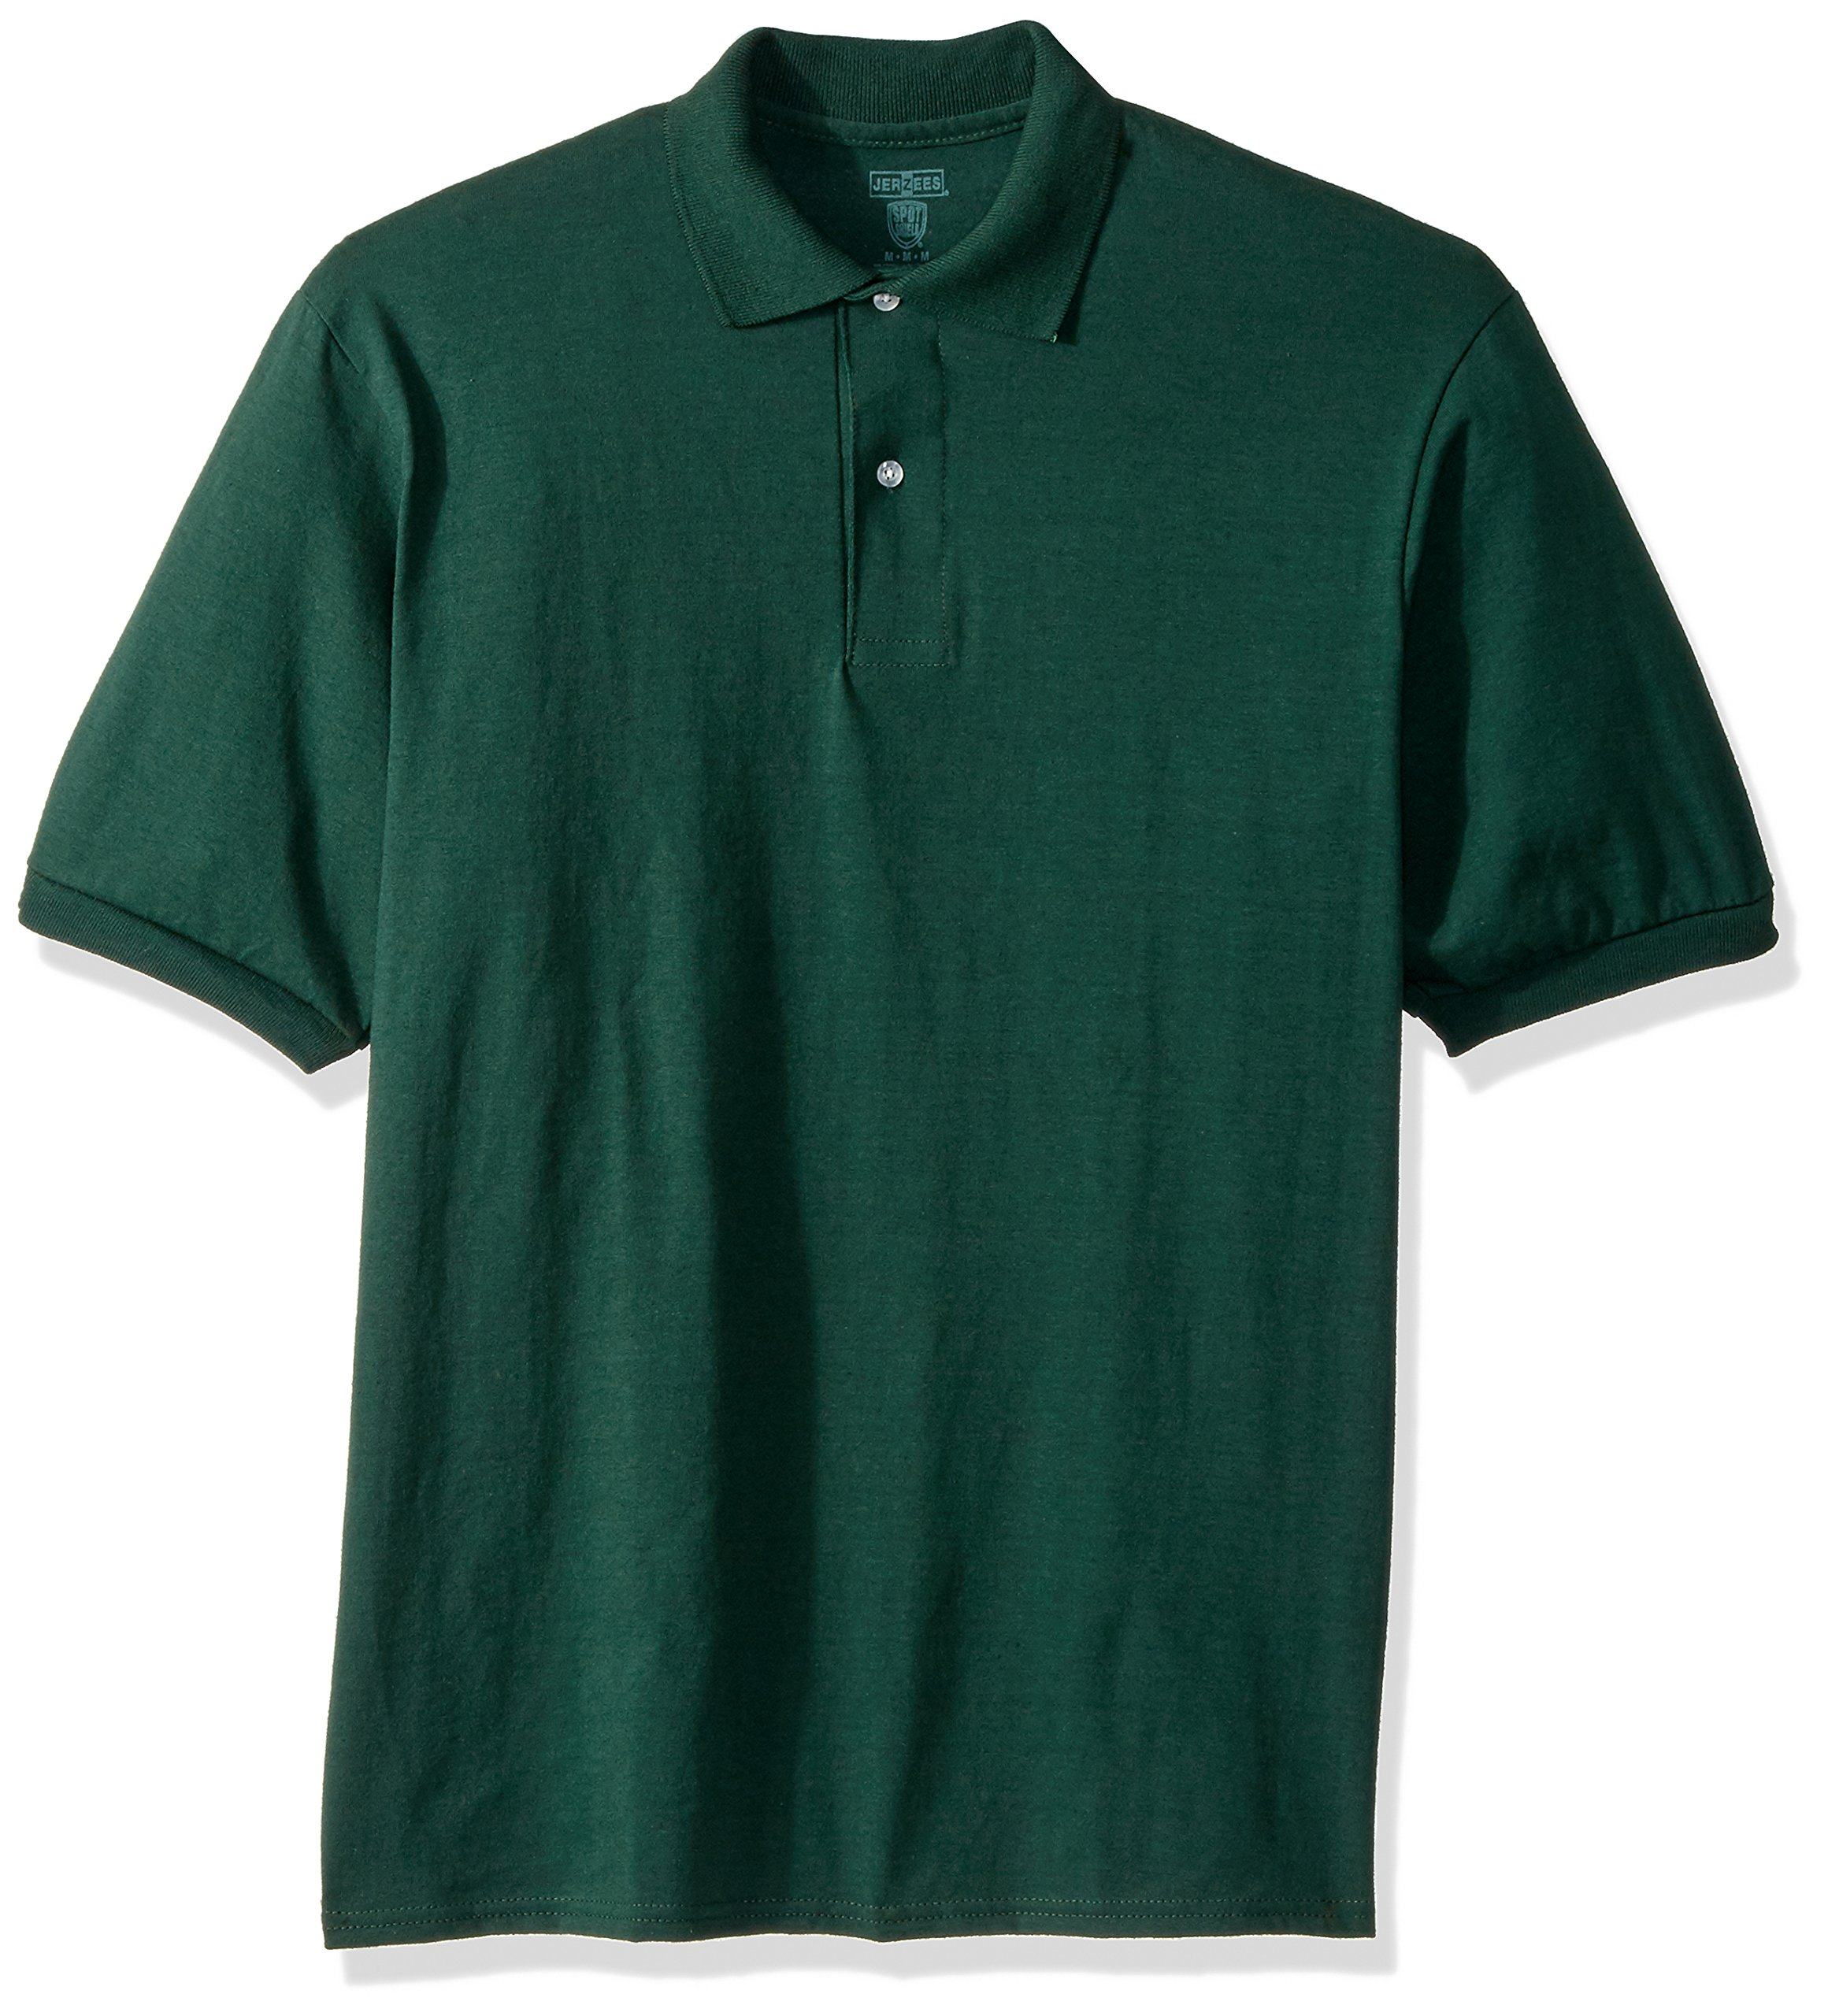 bdbcaa646e6 Best Rated in Men's Polo Shirts & Helpful Customer Reviews - Amazon.com